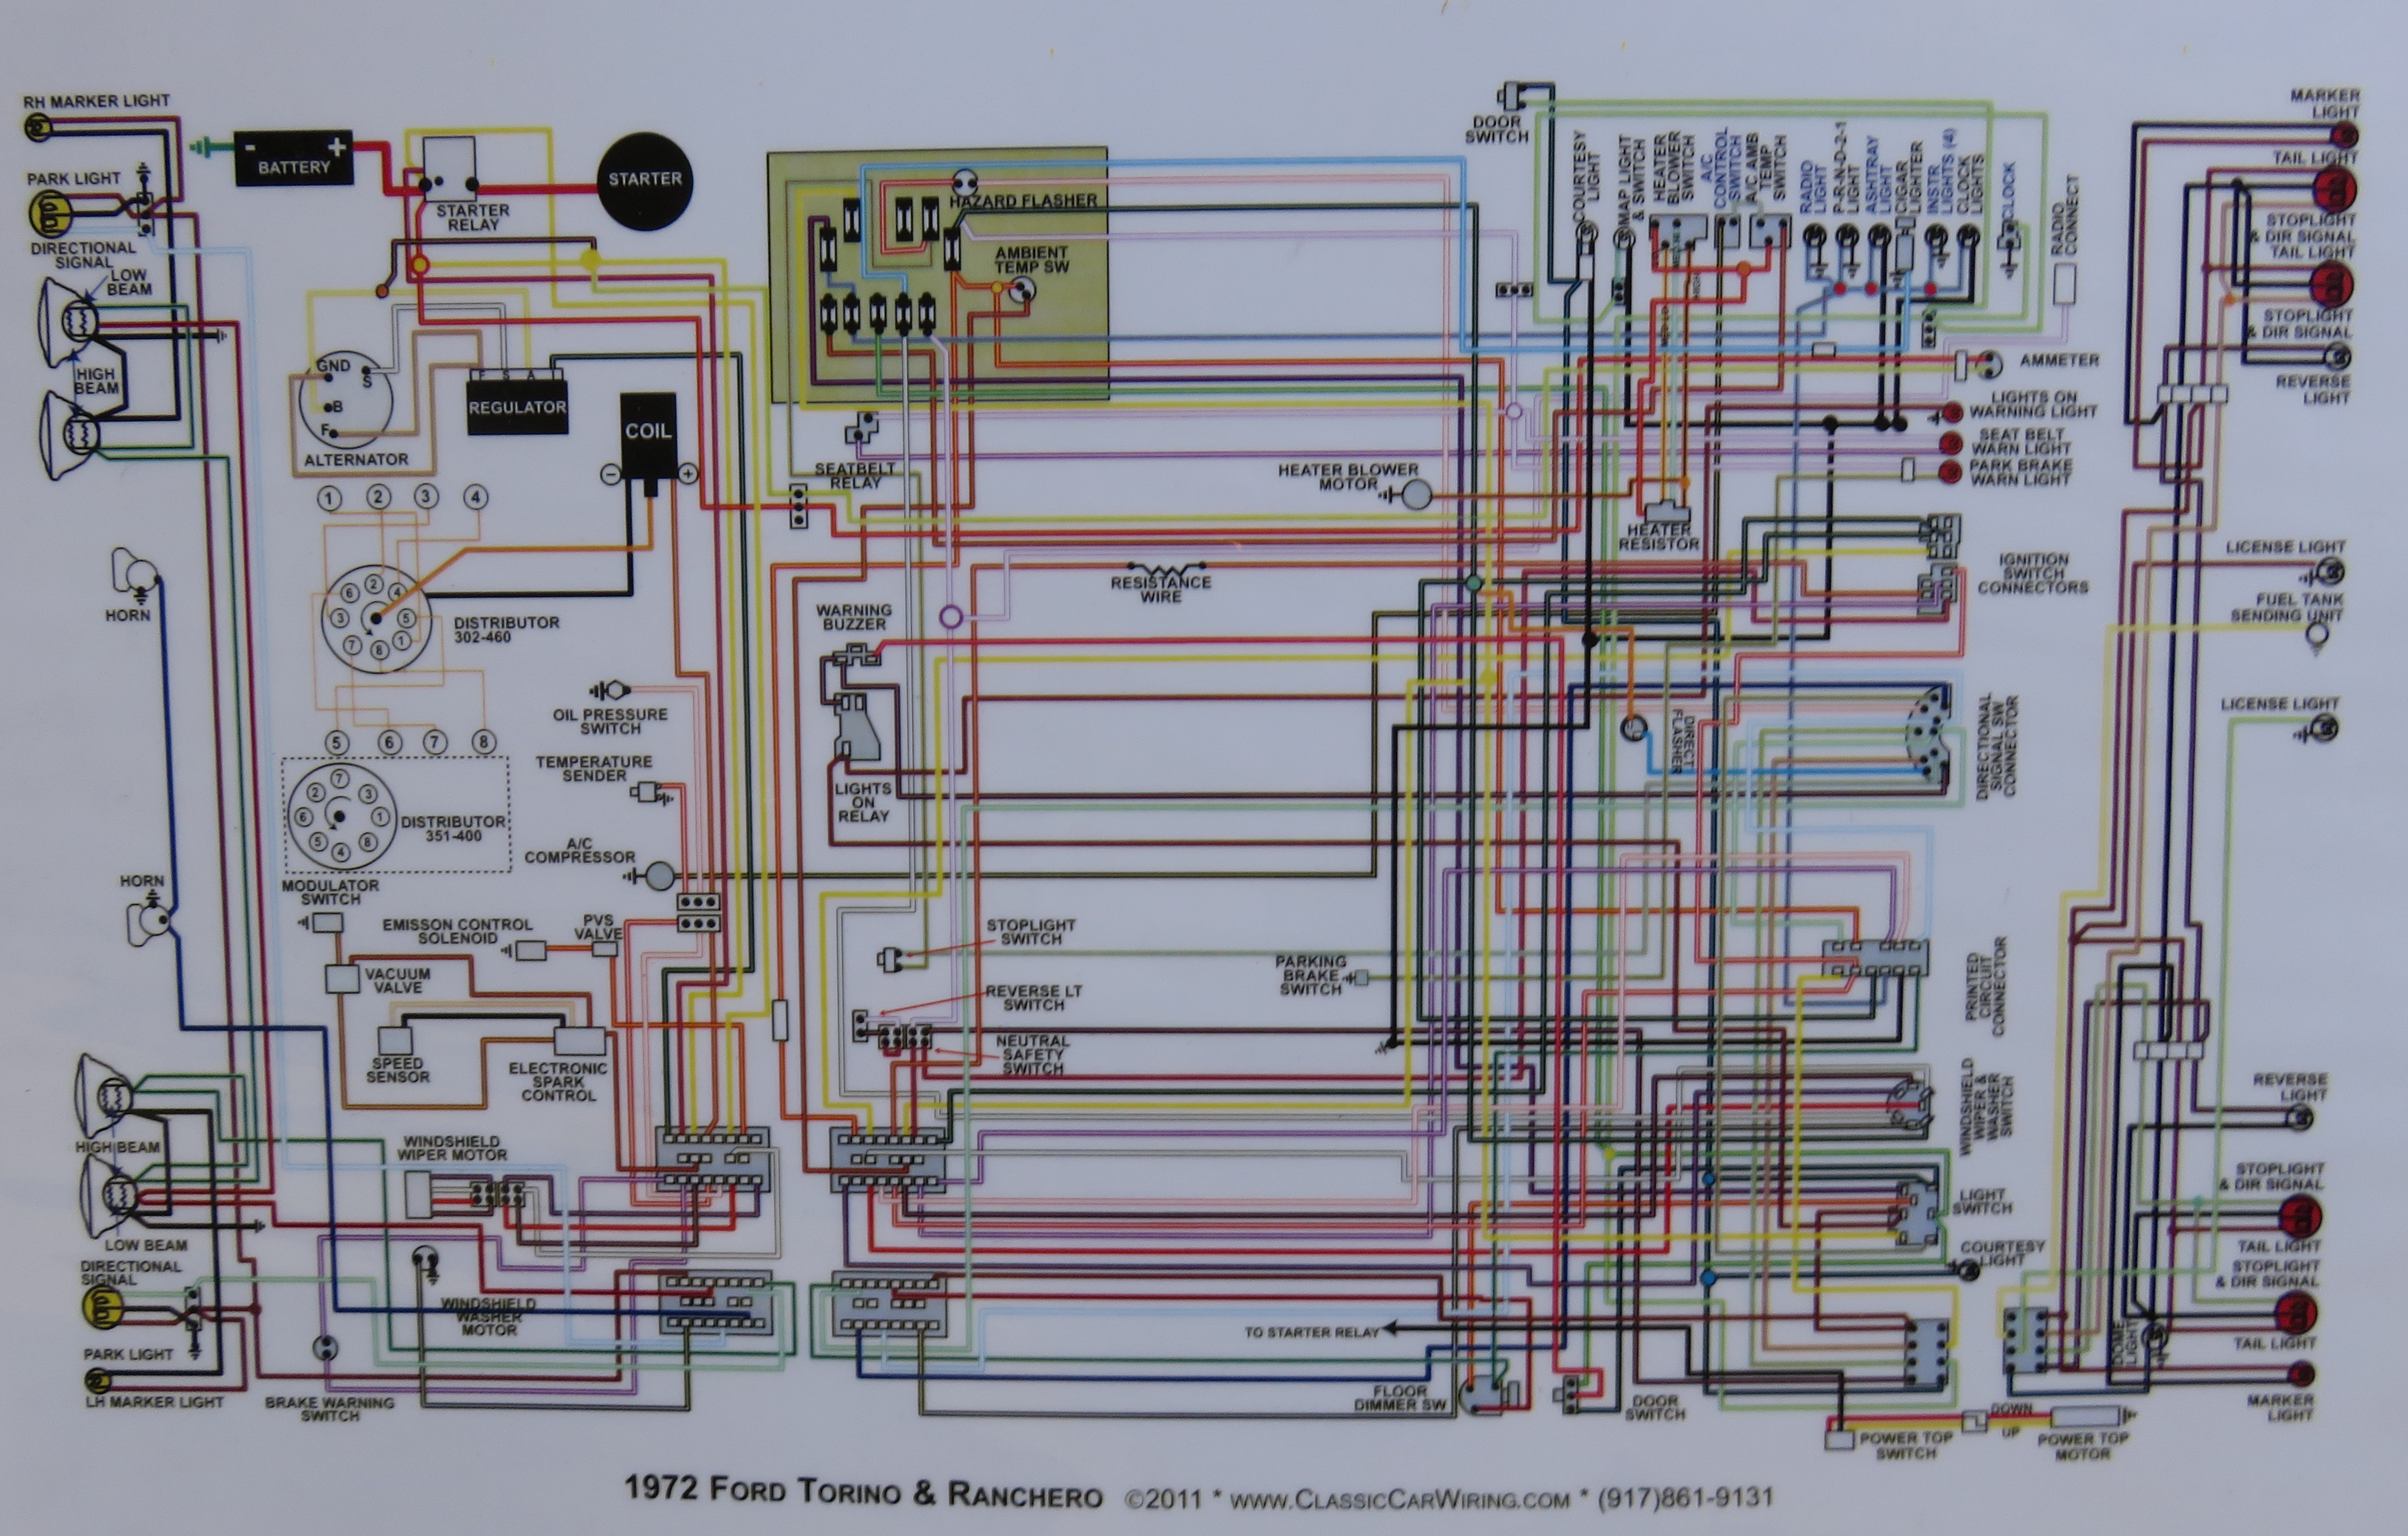 Rrtg18pabw Haier Refrigerator Wiring Diagram Trusted Diagrams Ge Hbf05eabb Rrtg Pabw